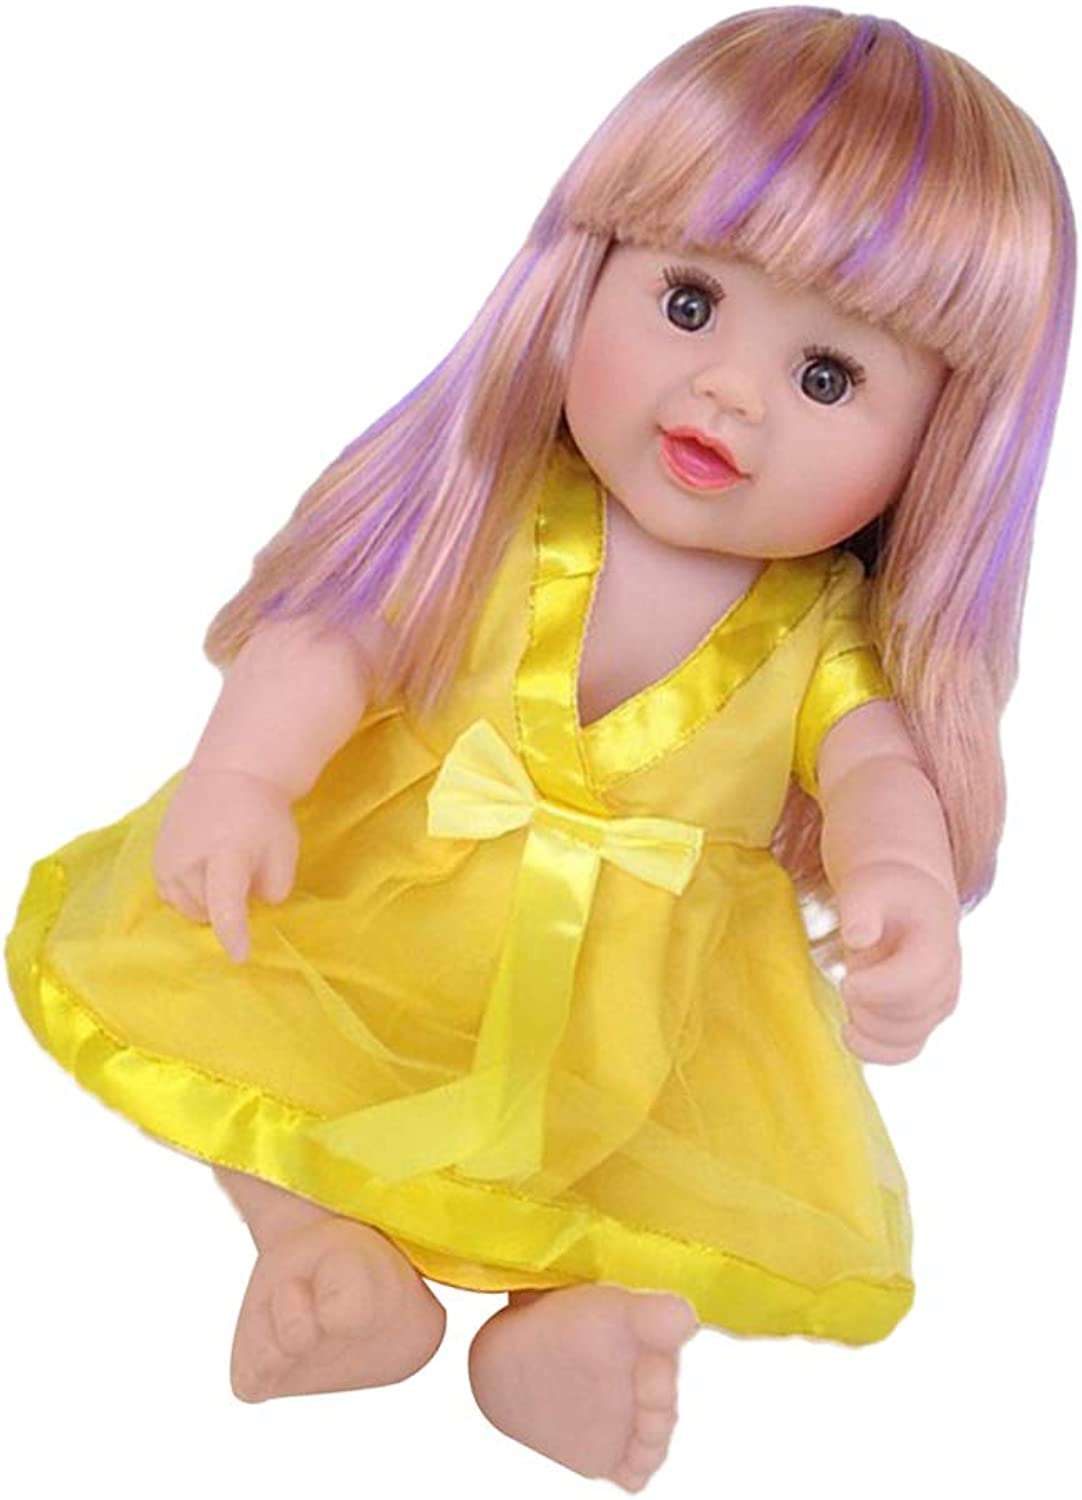 DYNWAVE 50cm Real Looking Reborn Girl Doll with Mixed color Hair, Yellow Dress Vinyl Accessories Best Gift